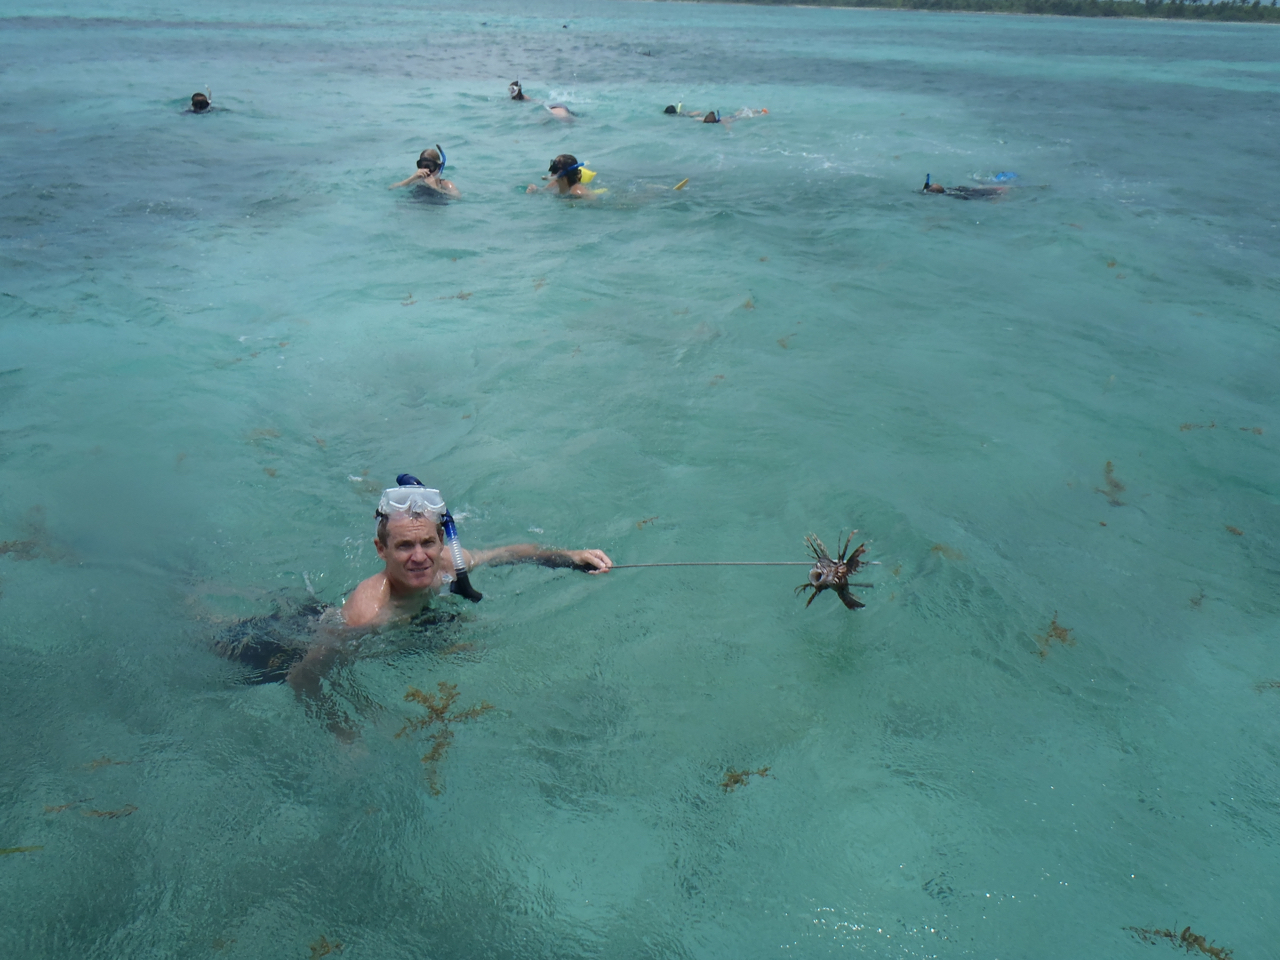 Photos of snorkeling and fishing in Belize shark Ray alley and Hol chan - 44 of 114